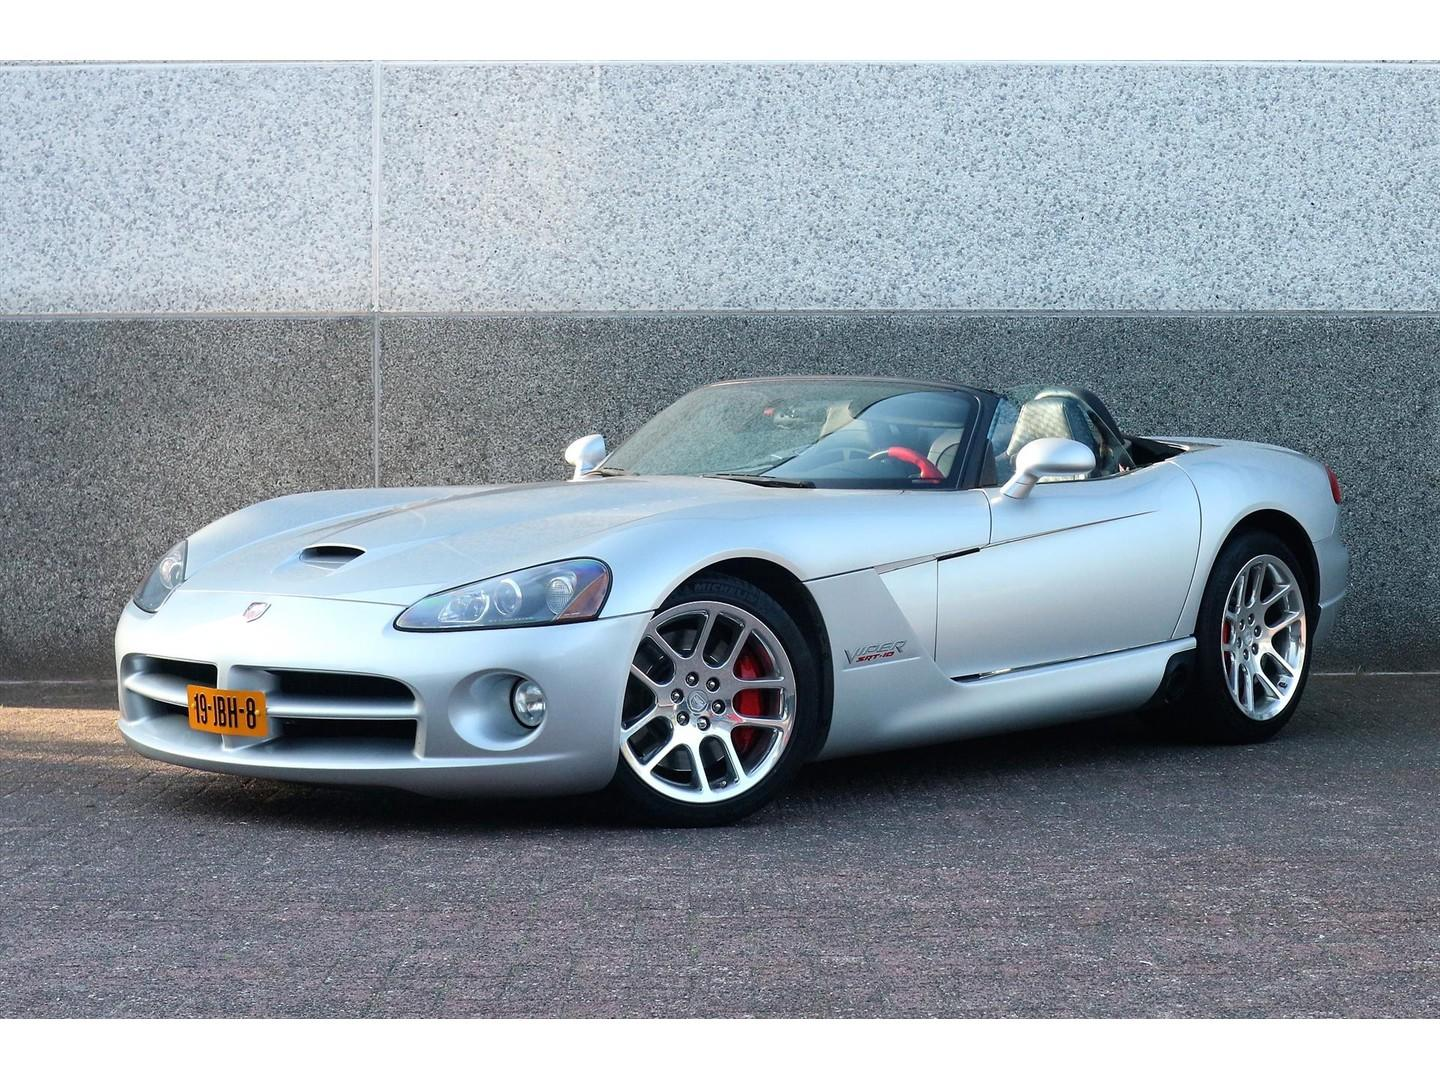 Dodge Viper Srt-10 convertible 8.3l v10